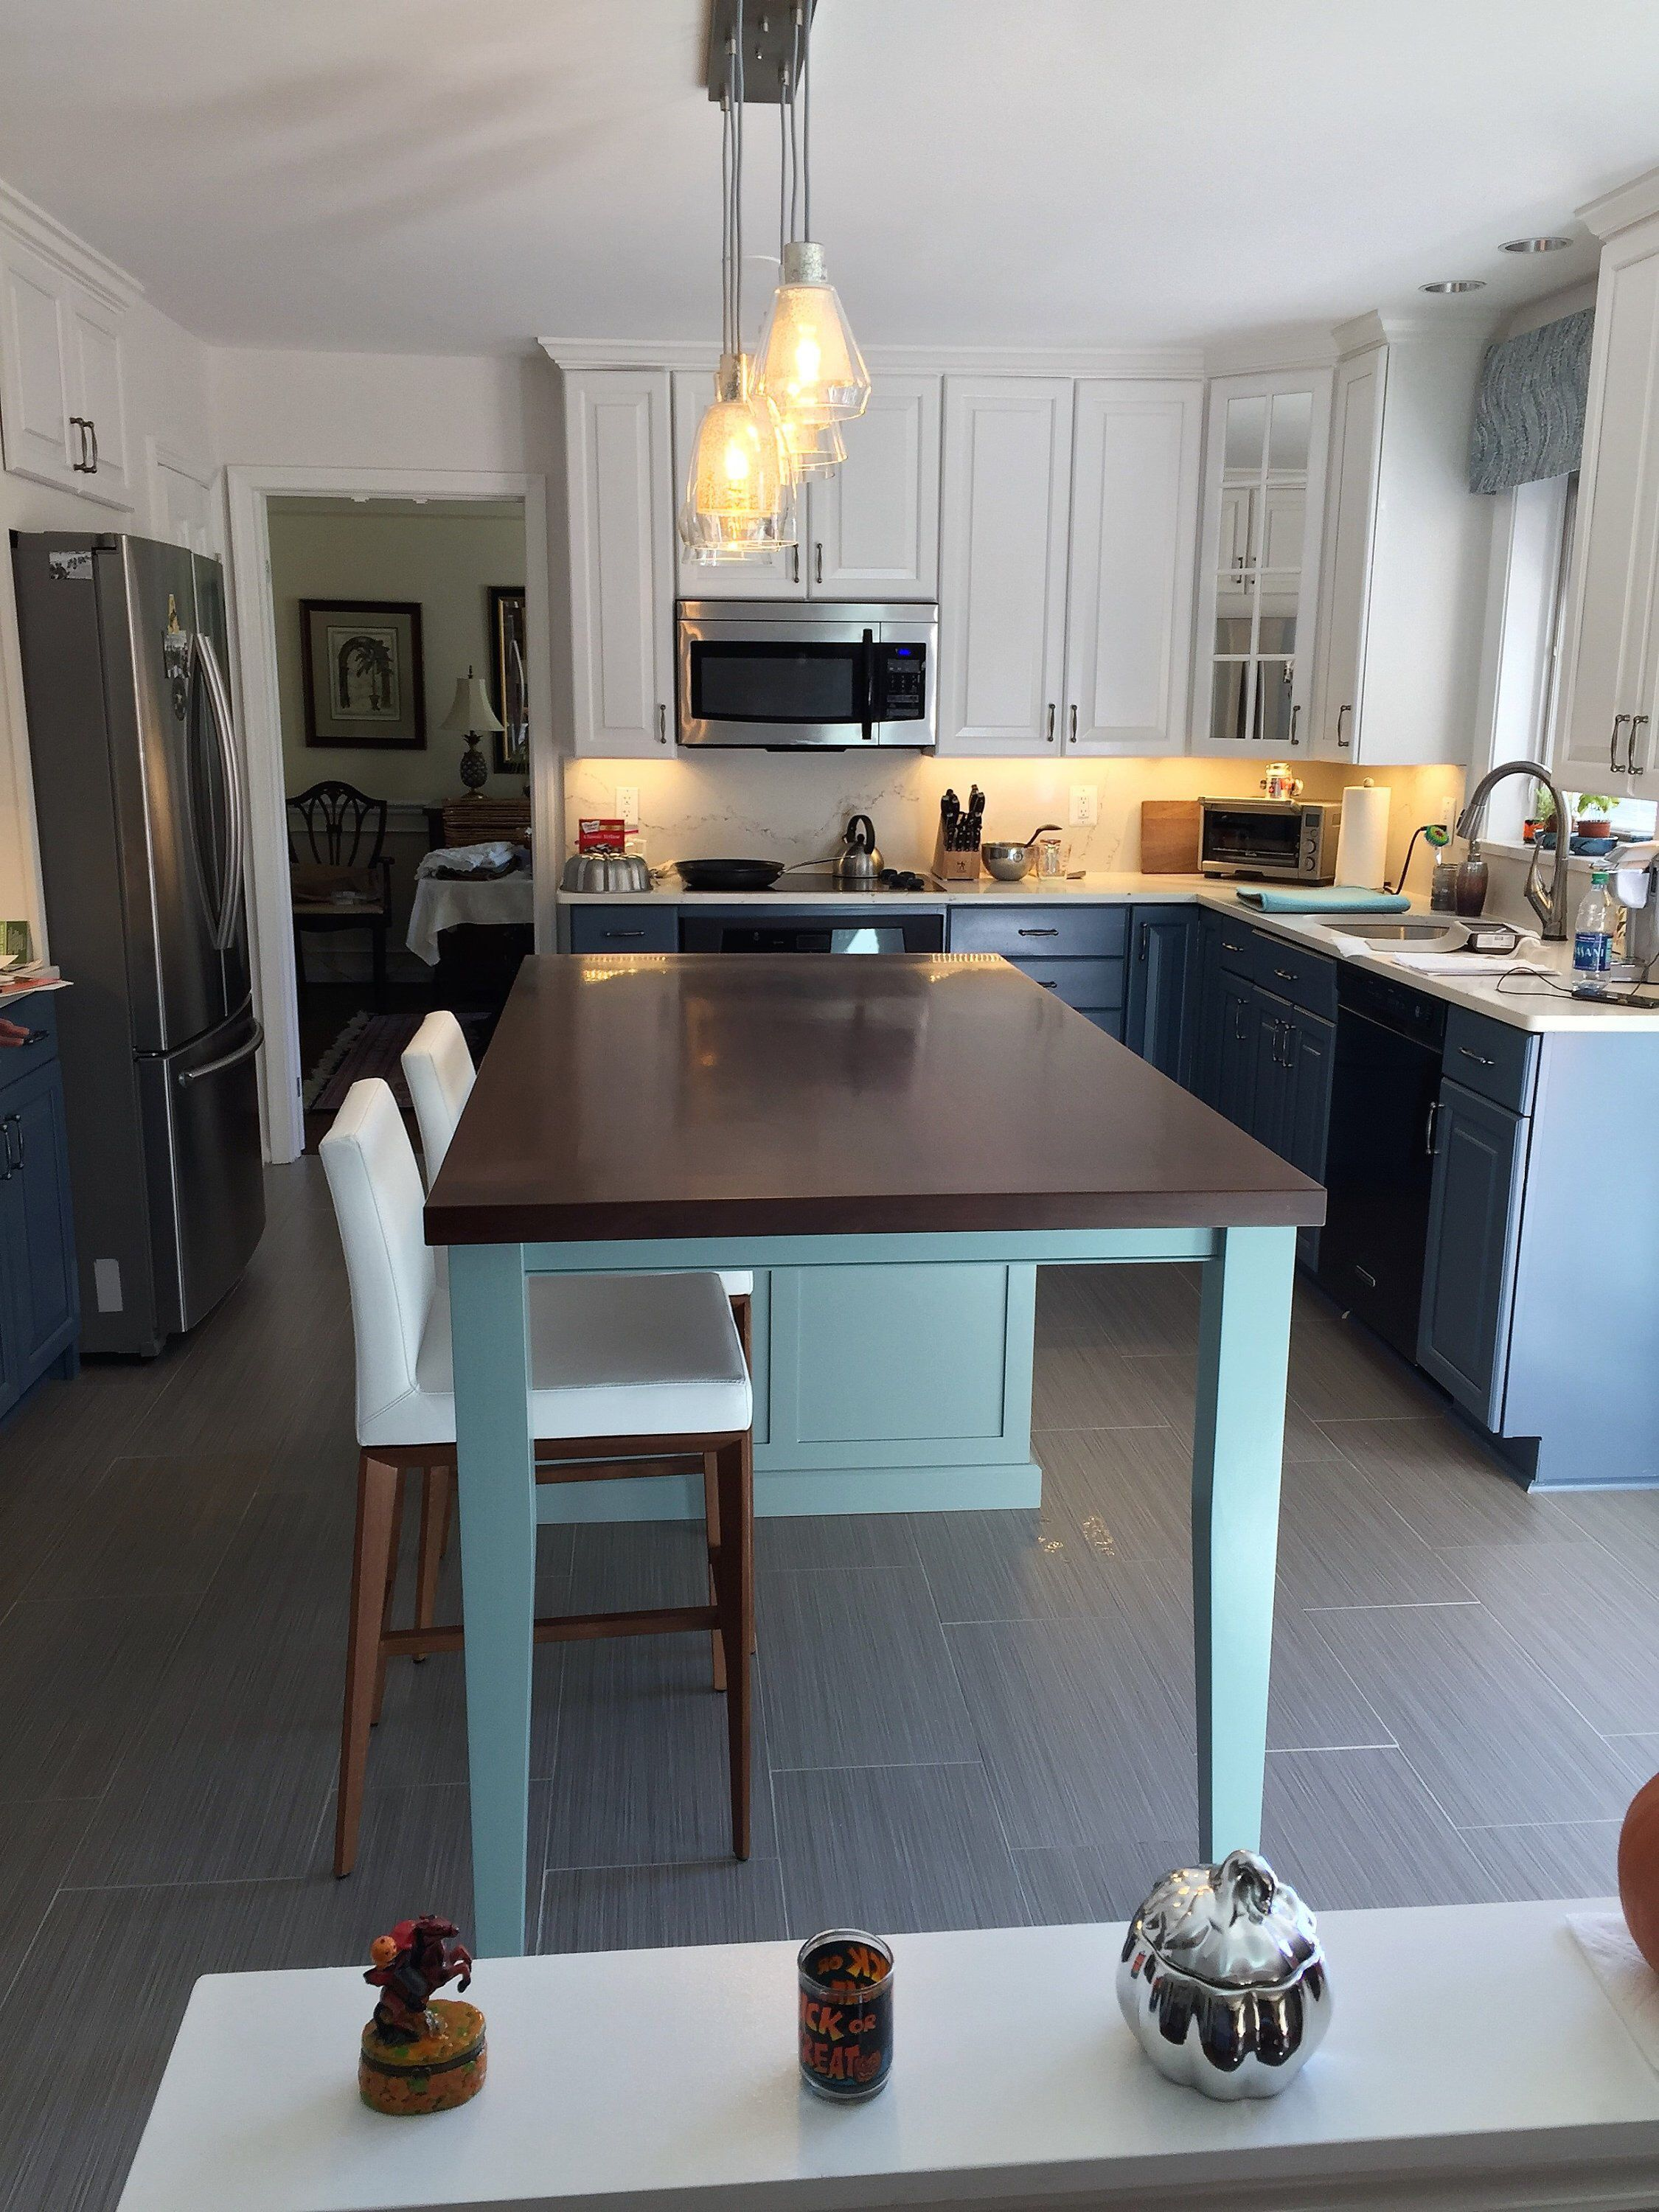 Kitchen Island With Seating And Tapered Legs Kitchen Island With Seating Kitchen Remodel Kitchen Design